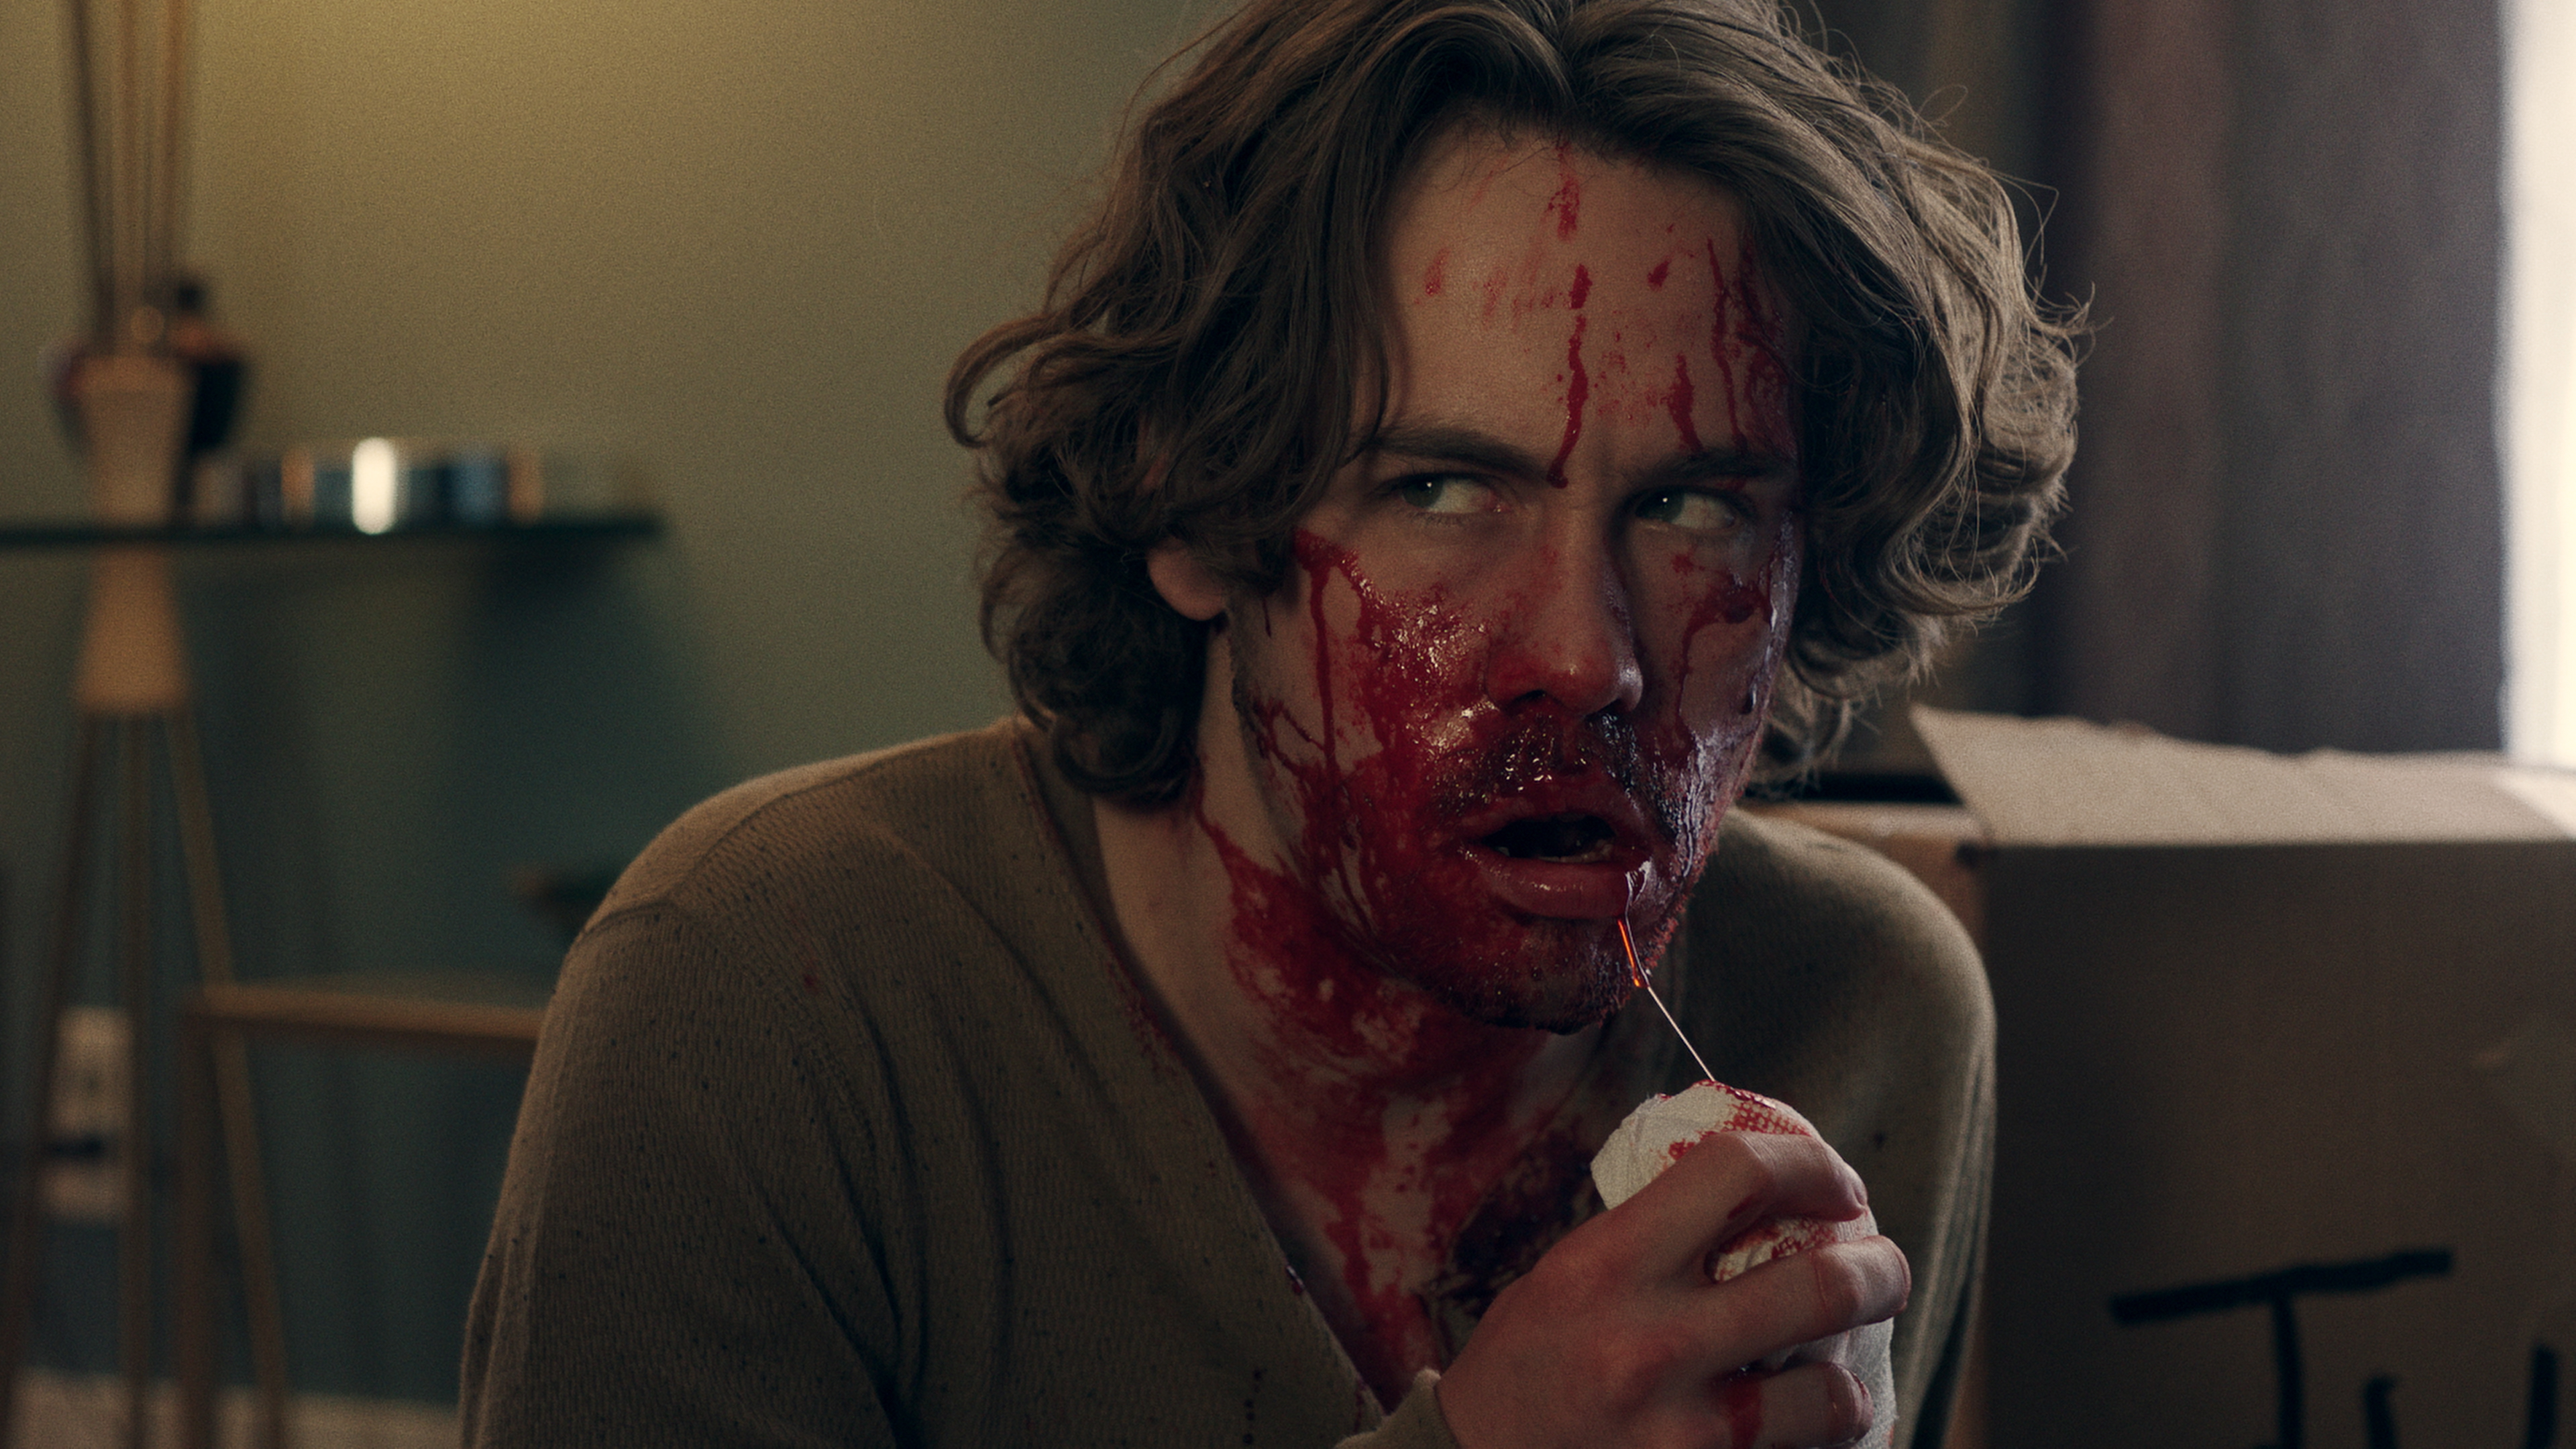 a man with a bloody face takes a sip from a milkshake